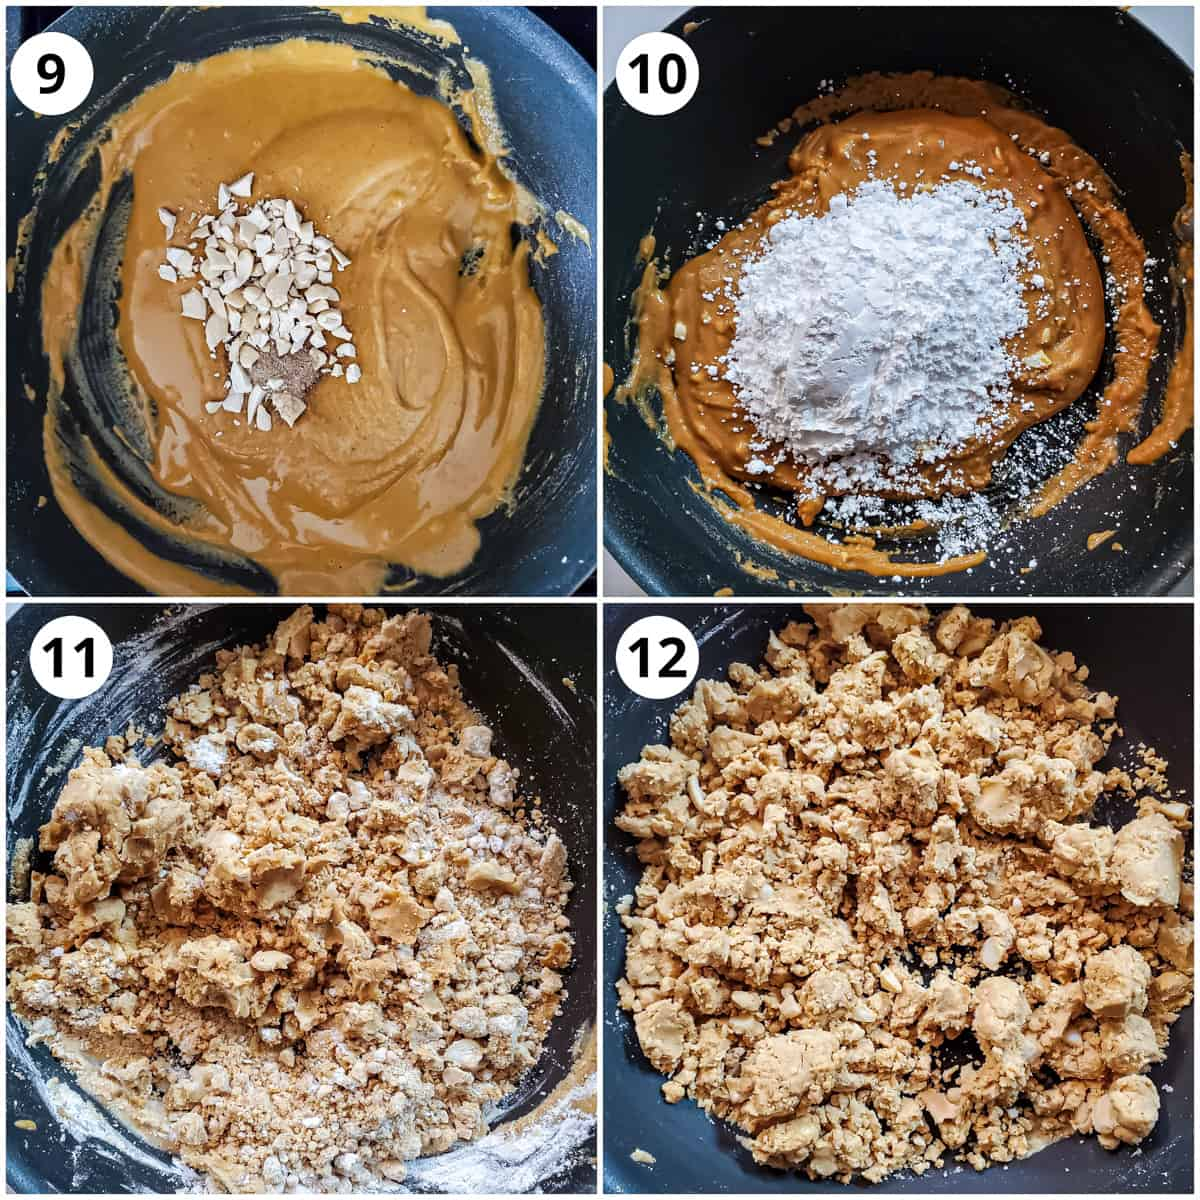 steps for mixing cashews, cardamom powder and sugar